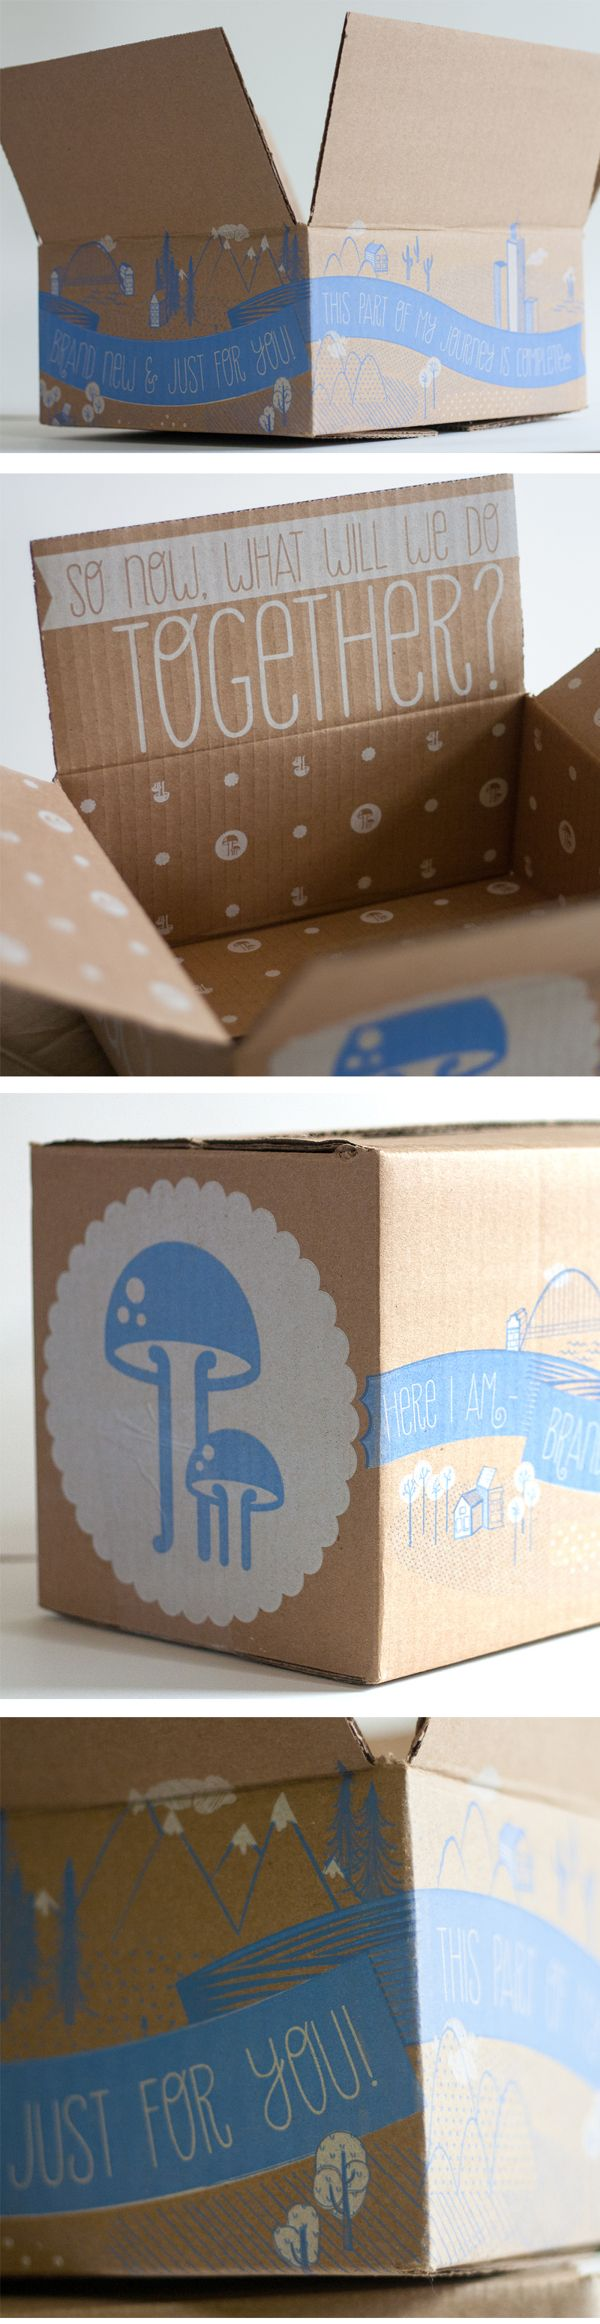 ModCloth 2012 Shipping Boxes by Joseph DeFerrari, via Behance